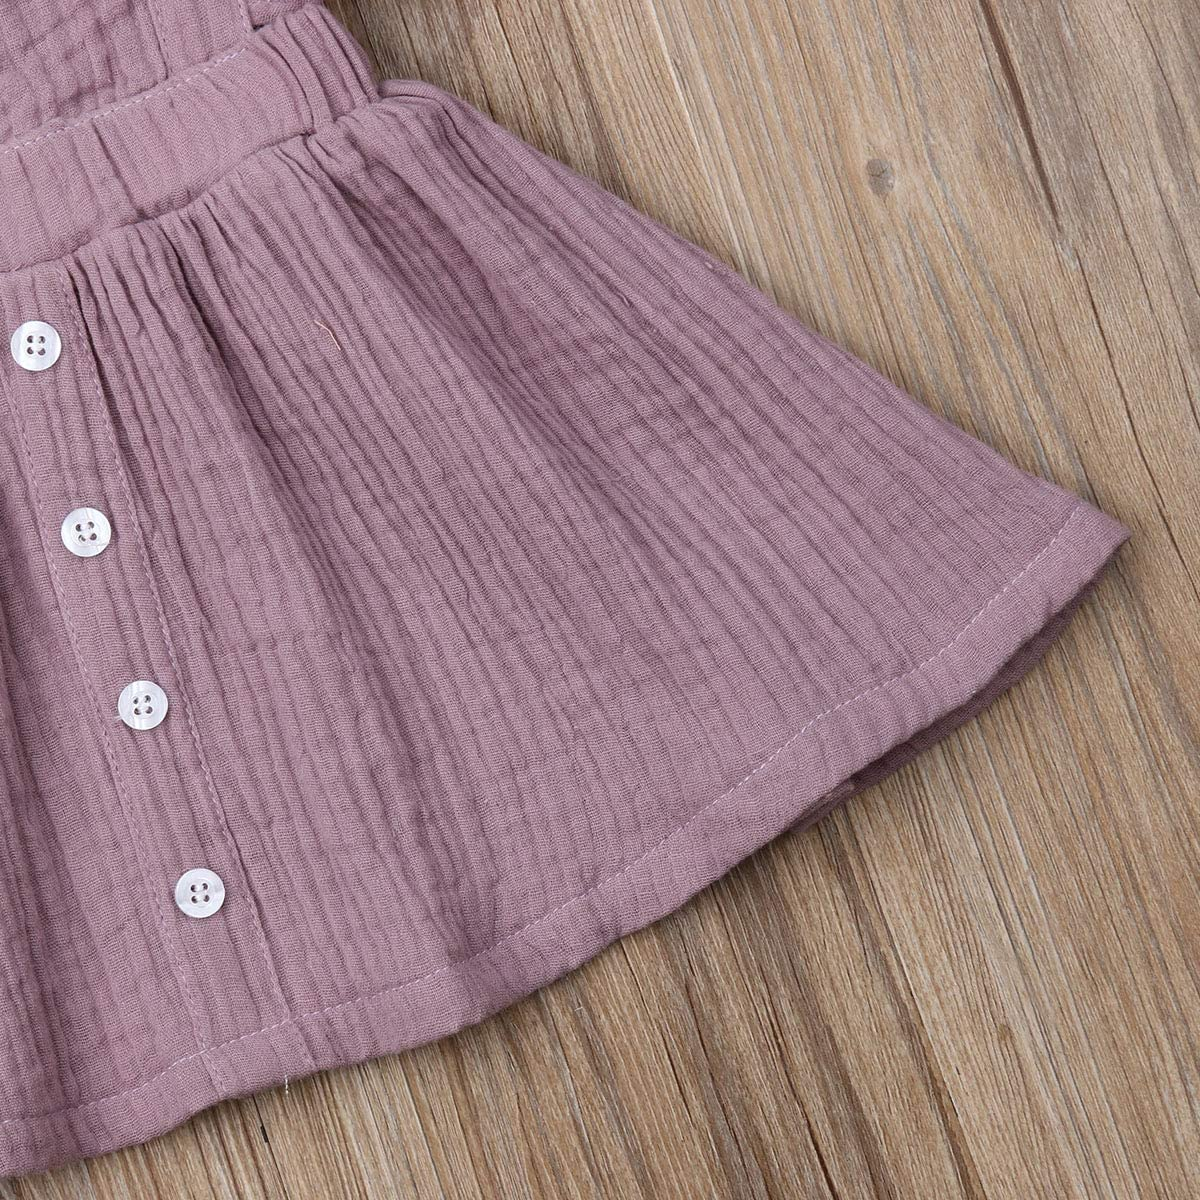 LuLuBaby Toddler Baby Girls Dresses Summer Cotton Ruffle Sleeveless Button Sundress Clothes